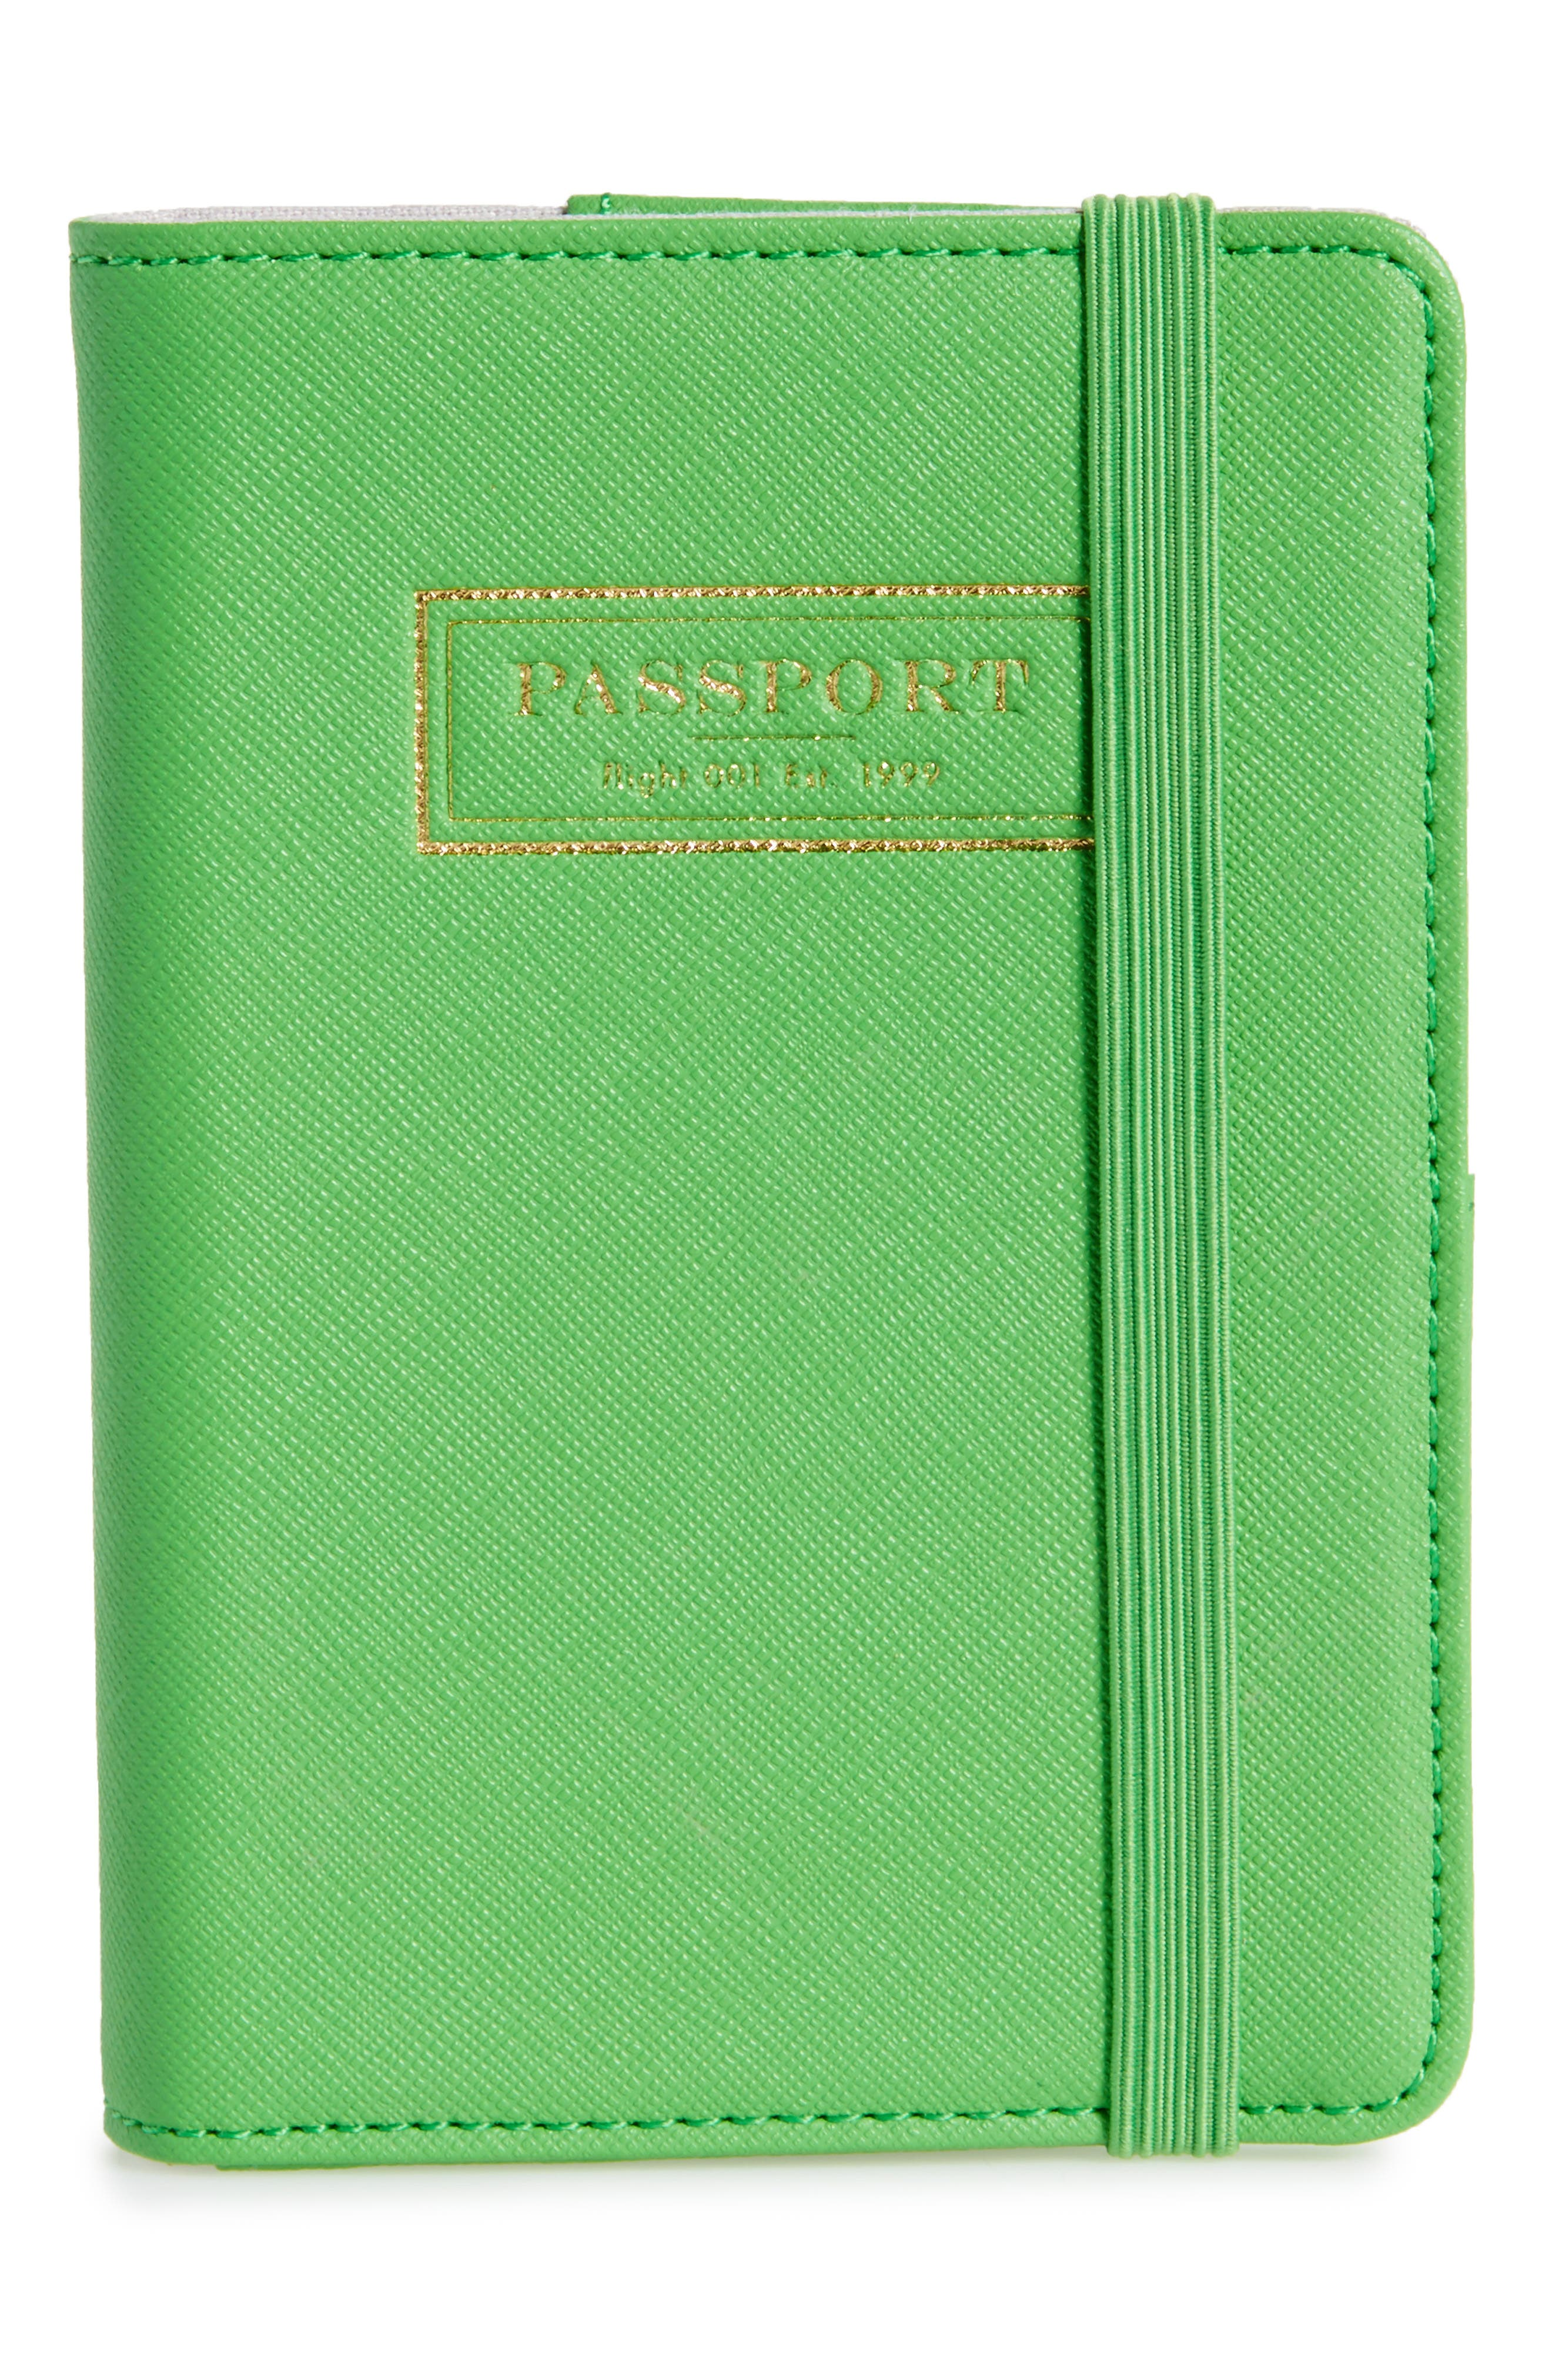 Correspondent Passport Cover,                             Main thumbnail 1, color,                             300